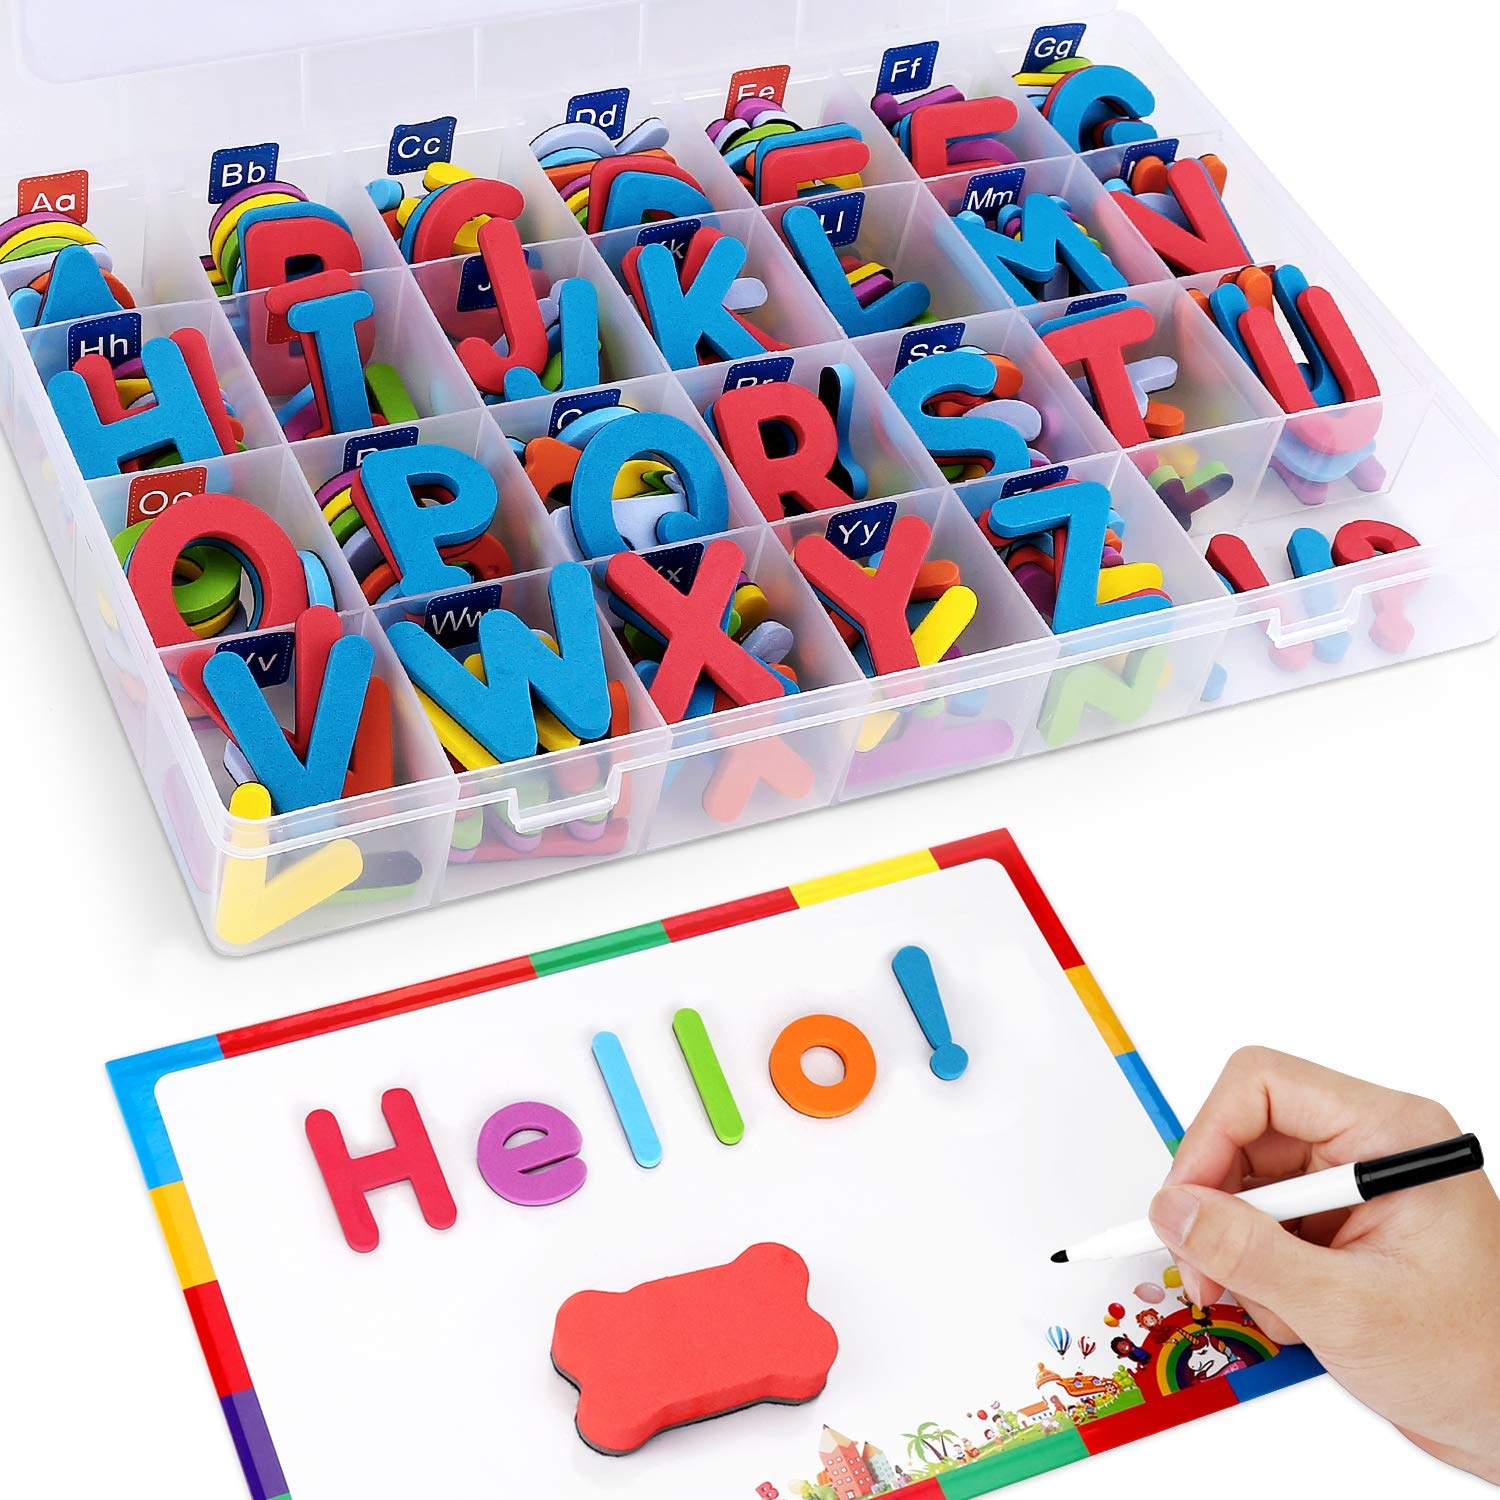 Xin store Magnetic Letters with Magnetic Writing Board and Storage Box - 208 Pieces Uppercase Lowercase Foam Fridge Alphabet Magnets for Kids Preschool Spelling and Learning Toy Game by Xin store